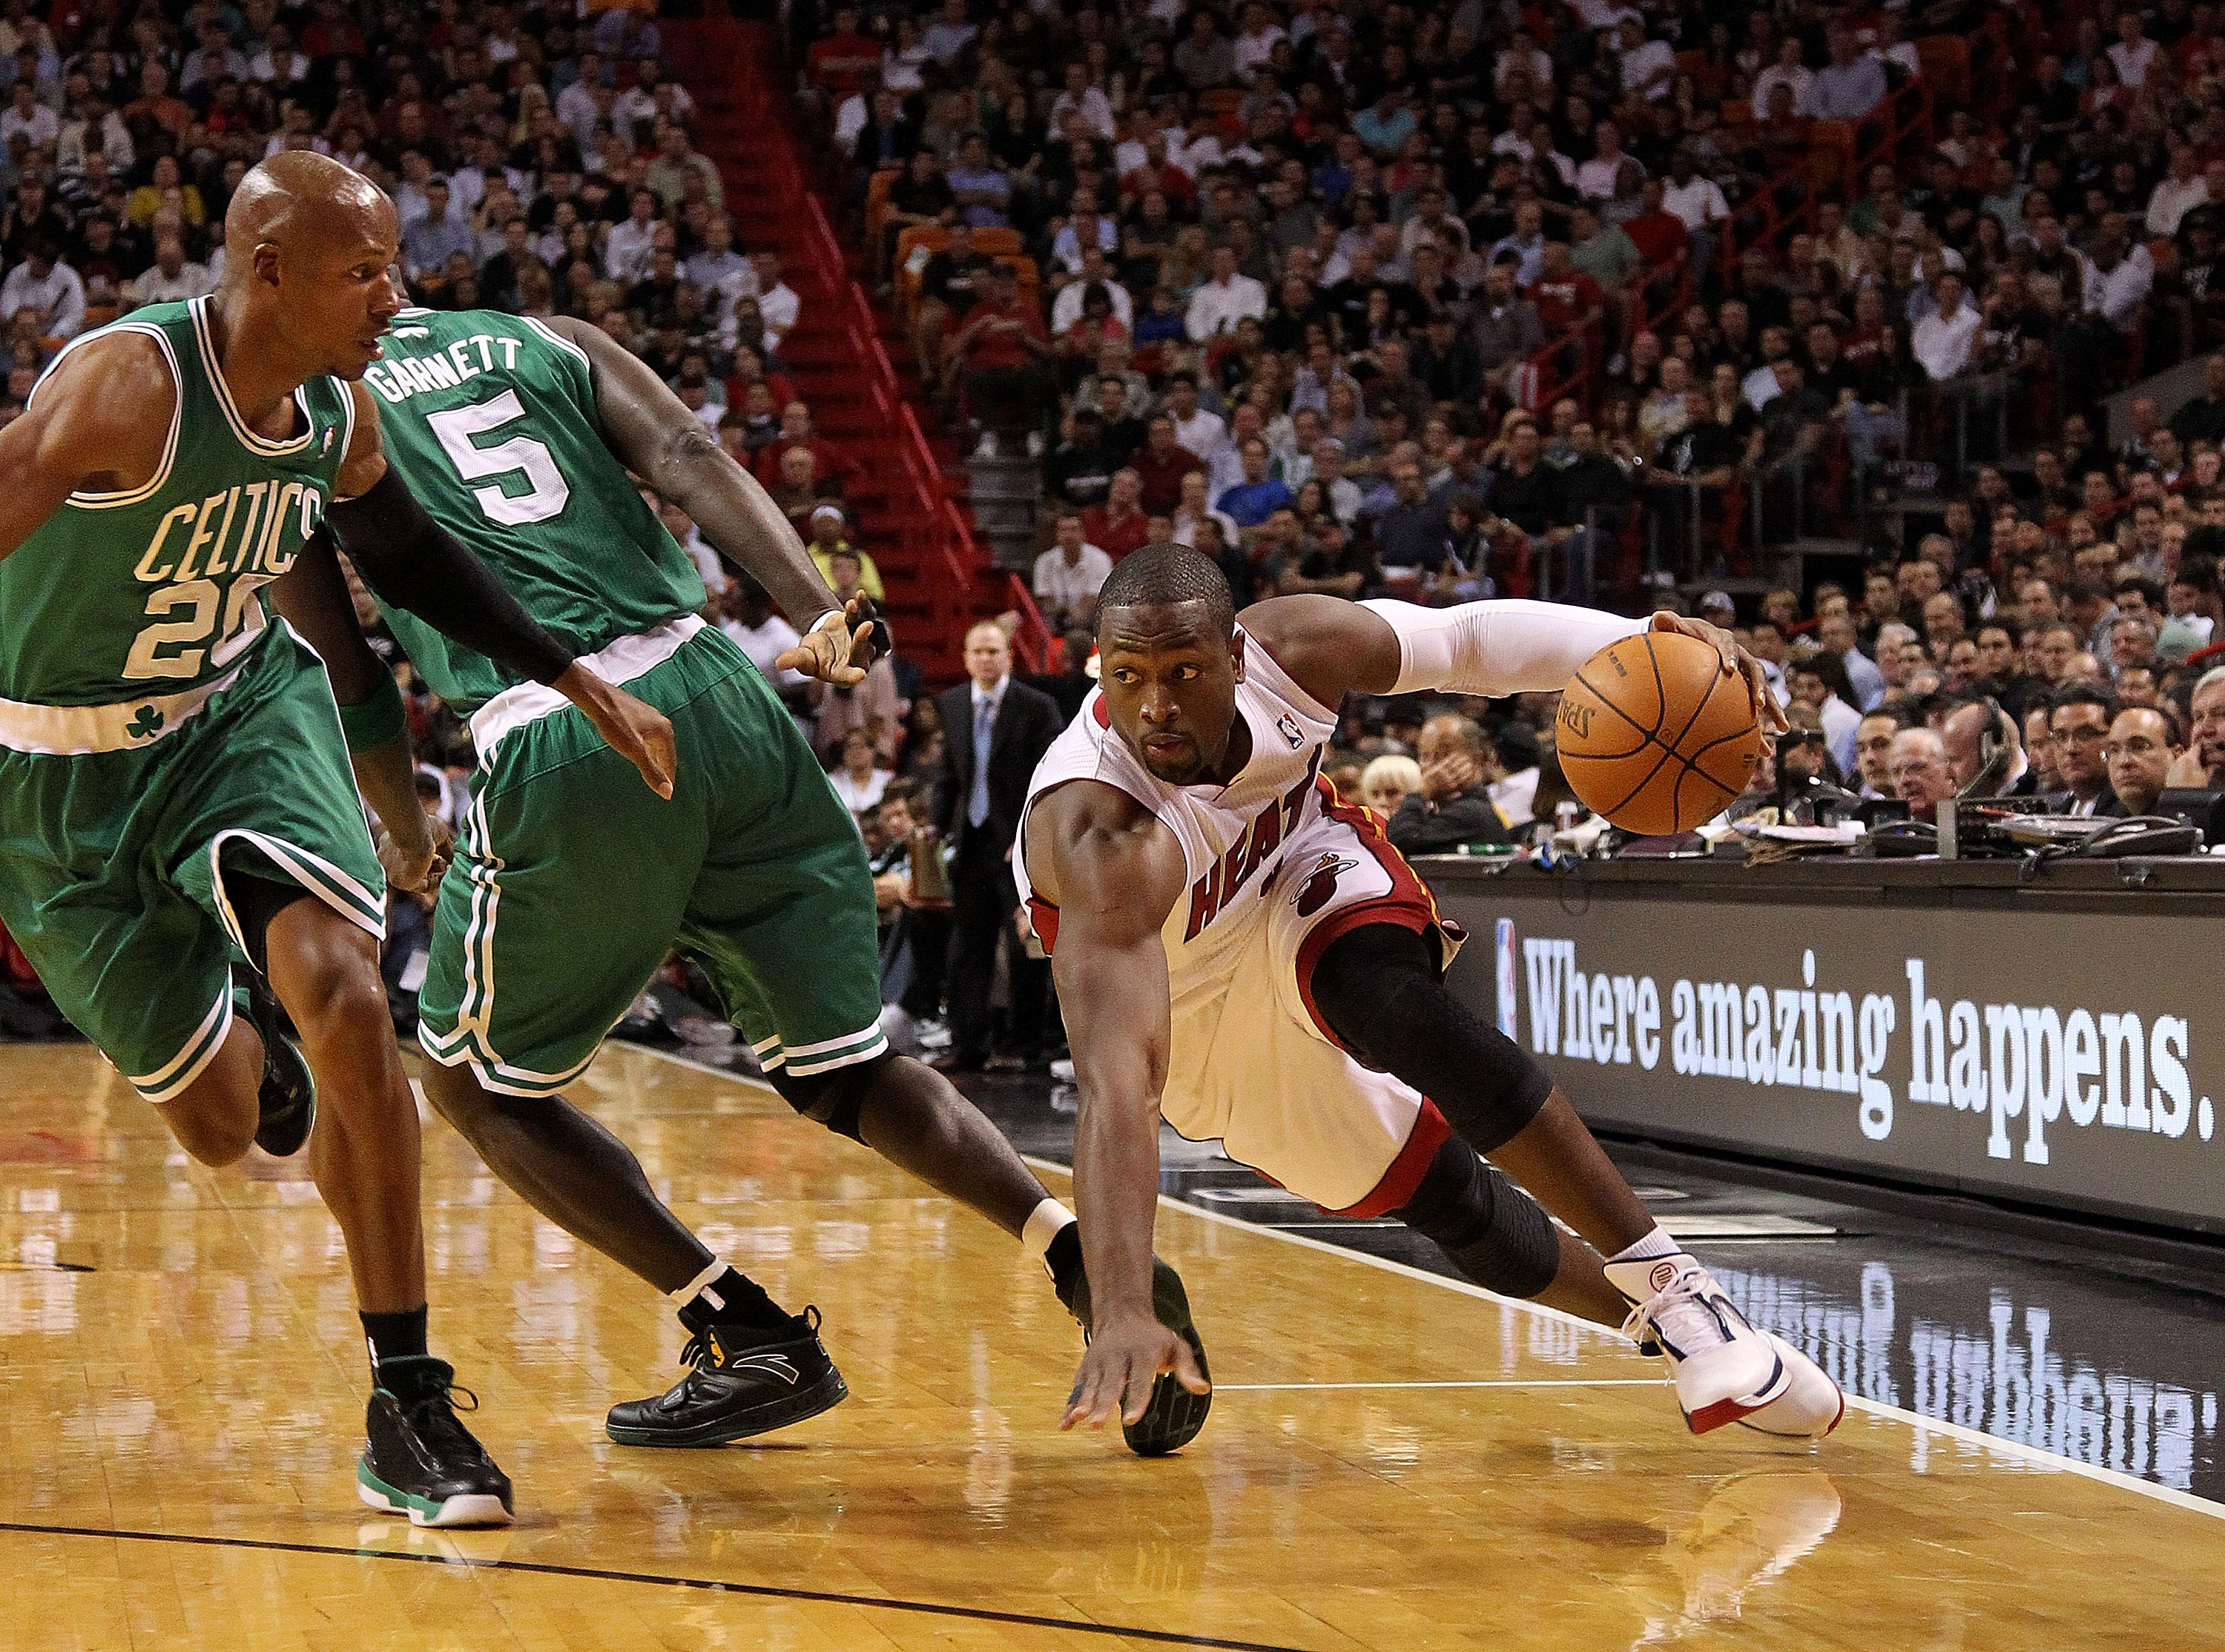 MIAMI - NOVEMBER 11:   Dwyane Wade #3 of the Miami Heat dribbles during a game against the Boston Celtics at American Airlines Arena on November 11, 2010 in Miami, Florida. NOTE TO USER: User expressly acknowledges and agrees that, by downloading and/or u